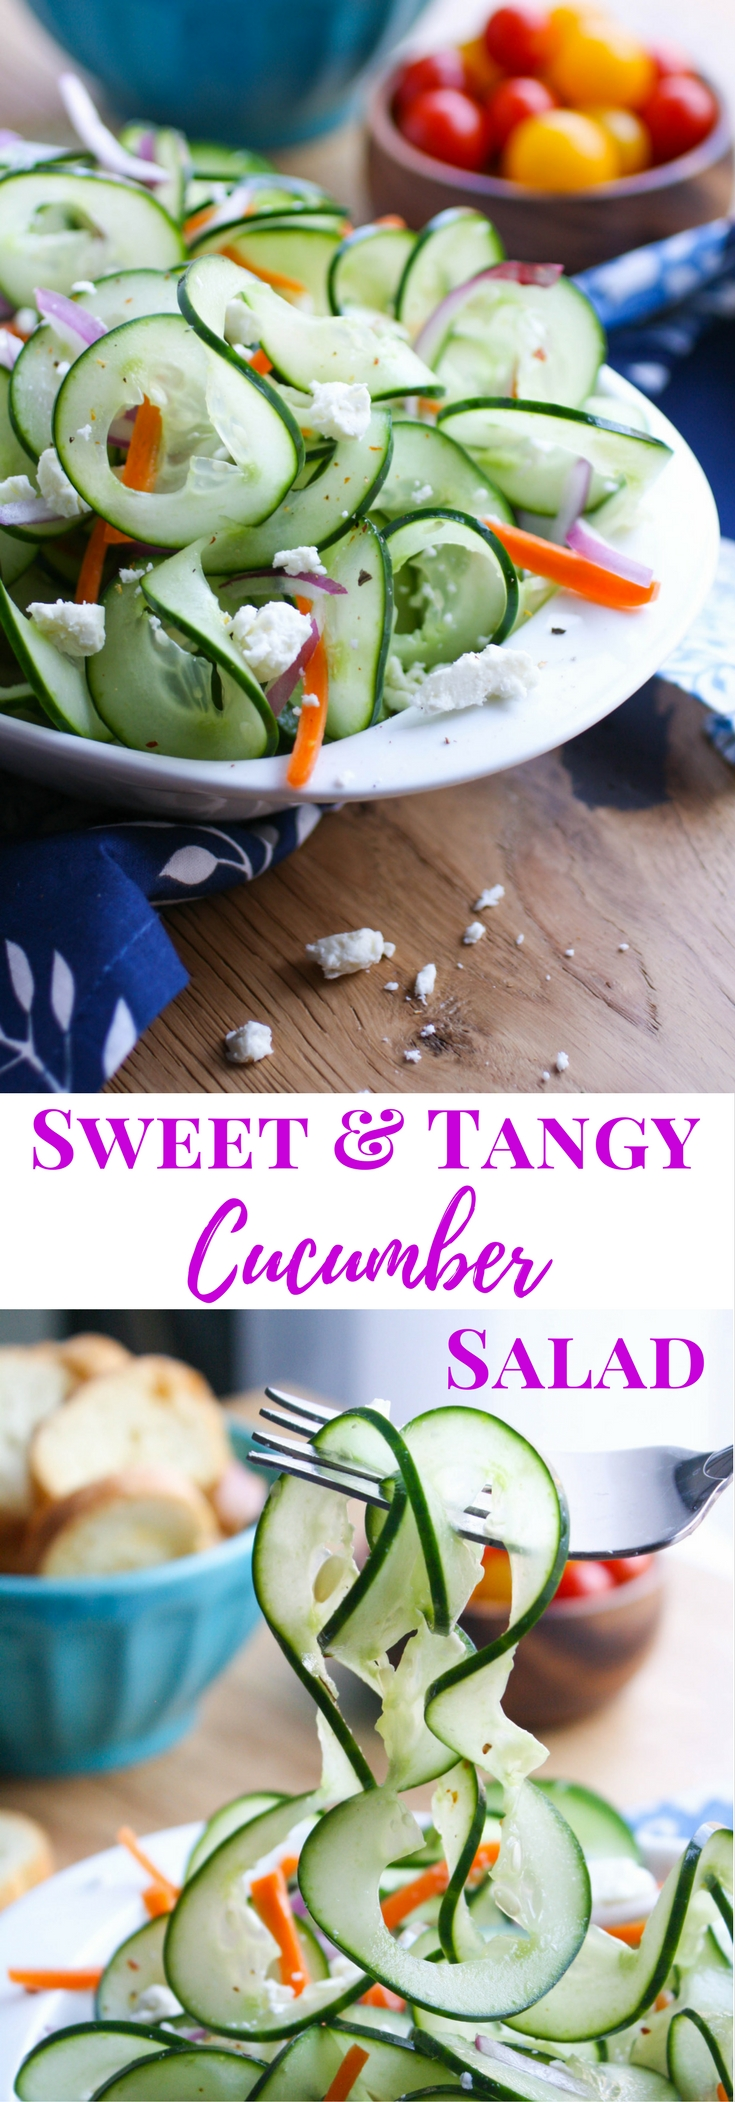 Sweet and Tangy Cucumber Ribbon Salad is a delightful salad that's great anytime. You'll love the flavor from the cucumbers and the simple dressing.